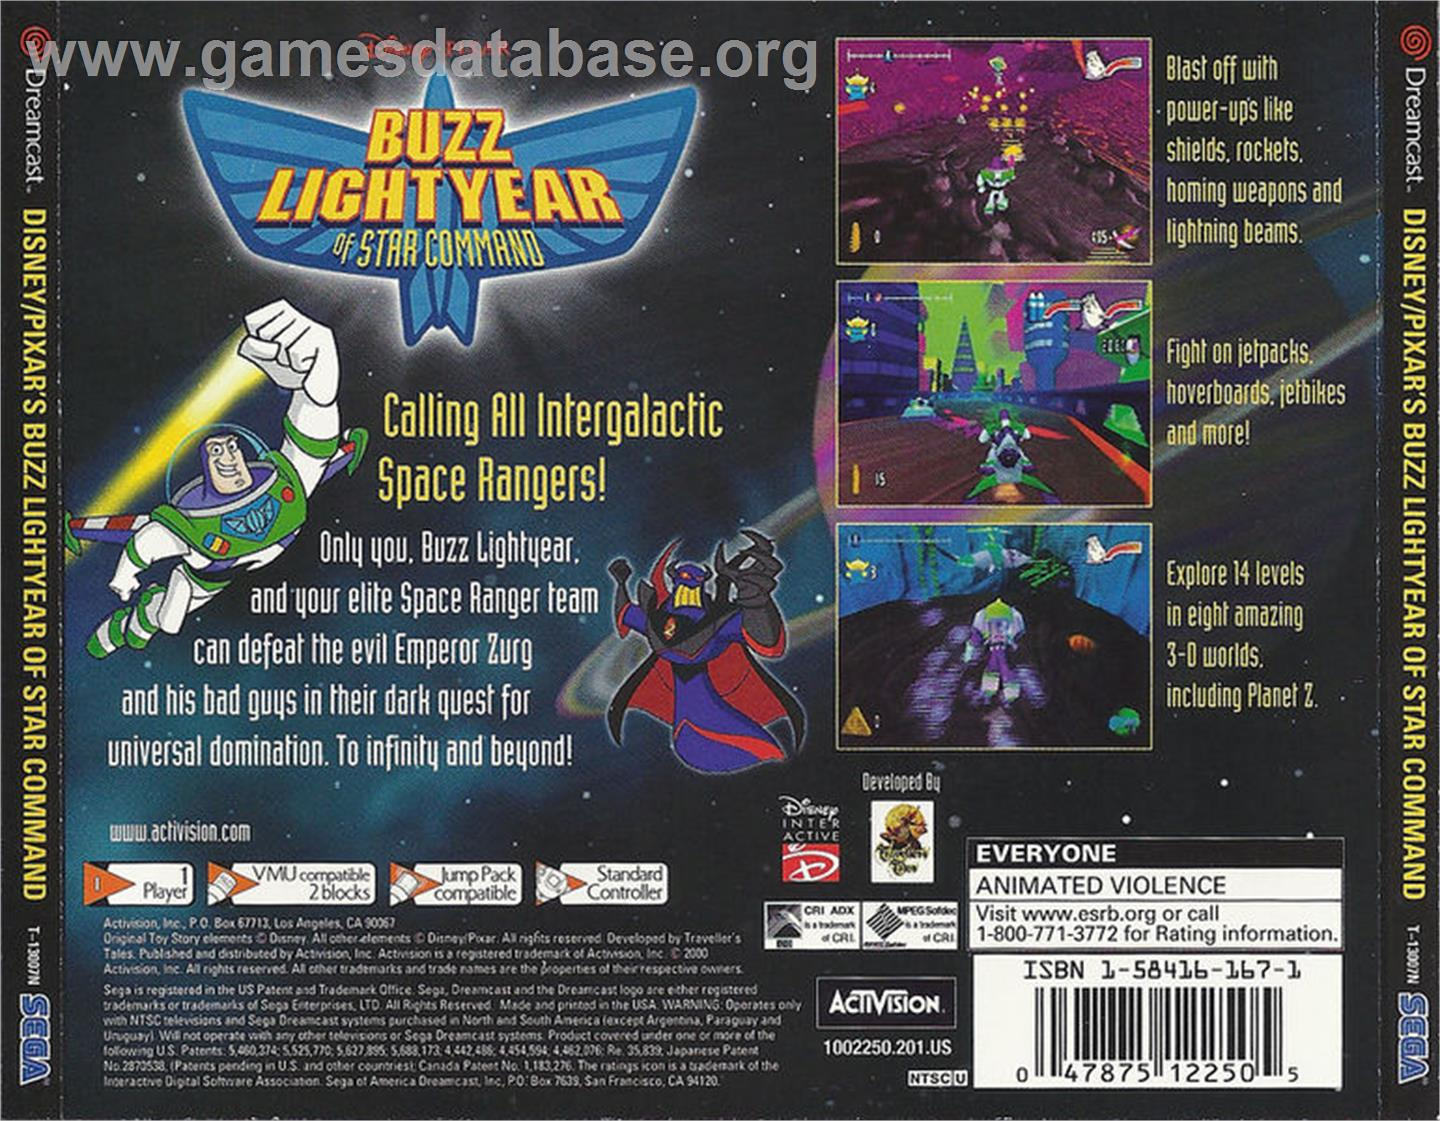 Toy Story 2: Buzz Lightyear of Star Command - Sega Dreamcast - Artwork - Box Back